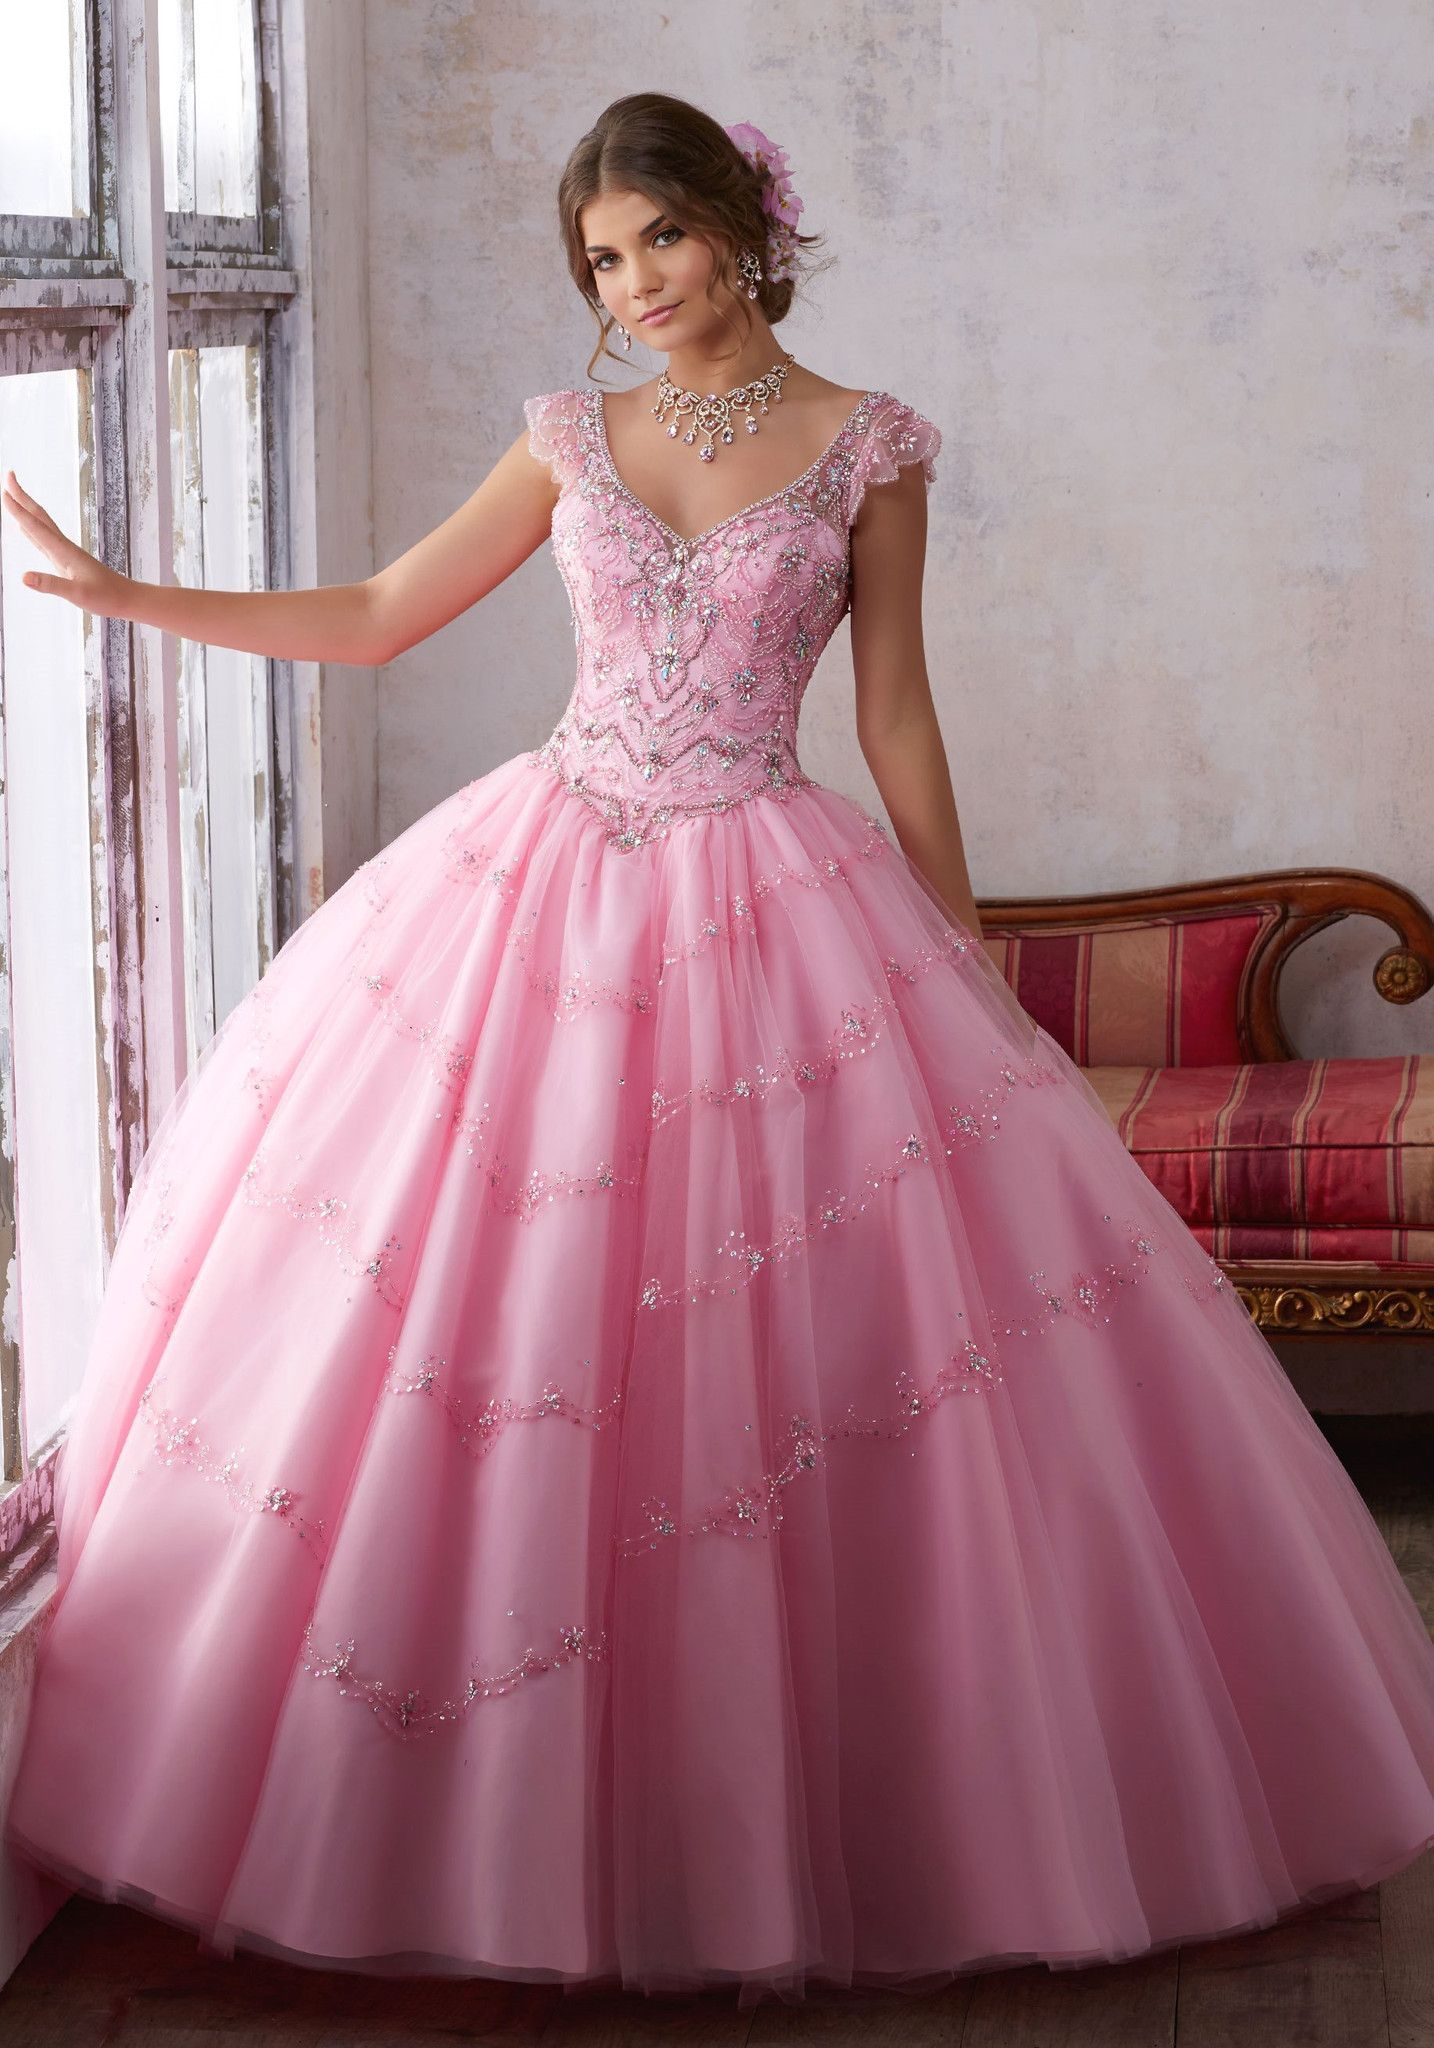 Mori Lee Quinceanera Dress 89136 | Pinterest | Vestido de 15 año, 15 ...